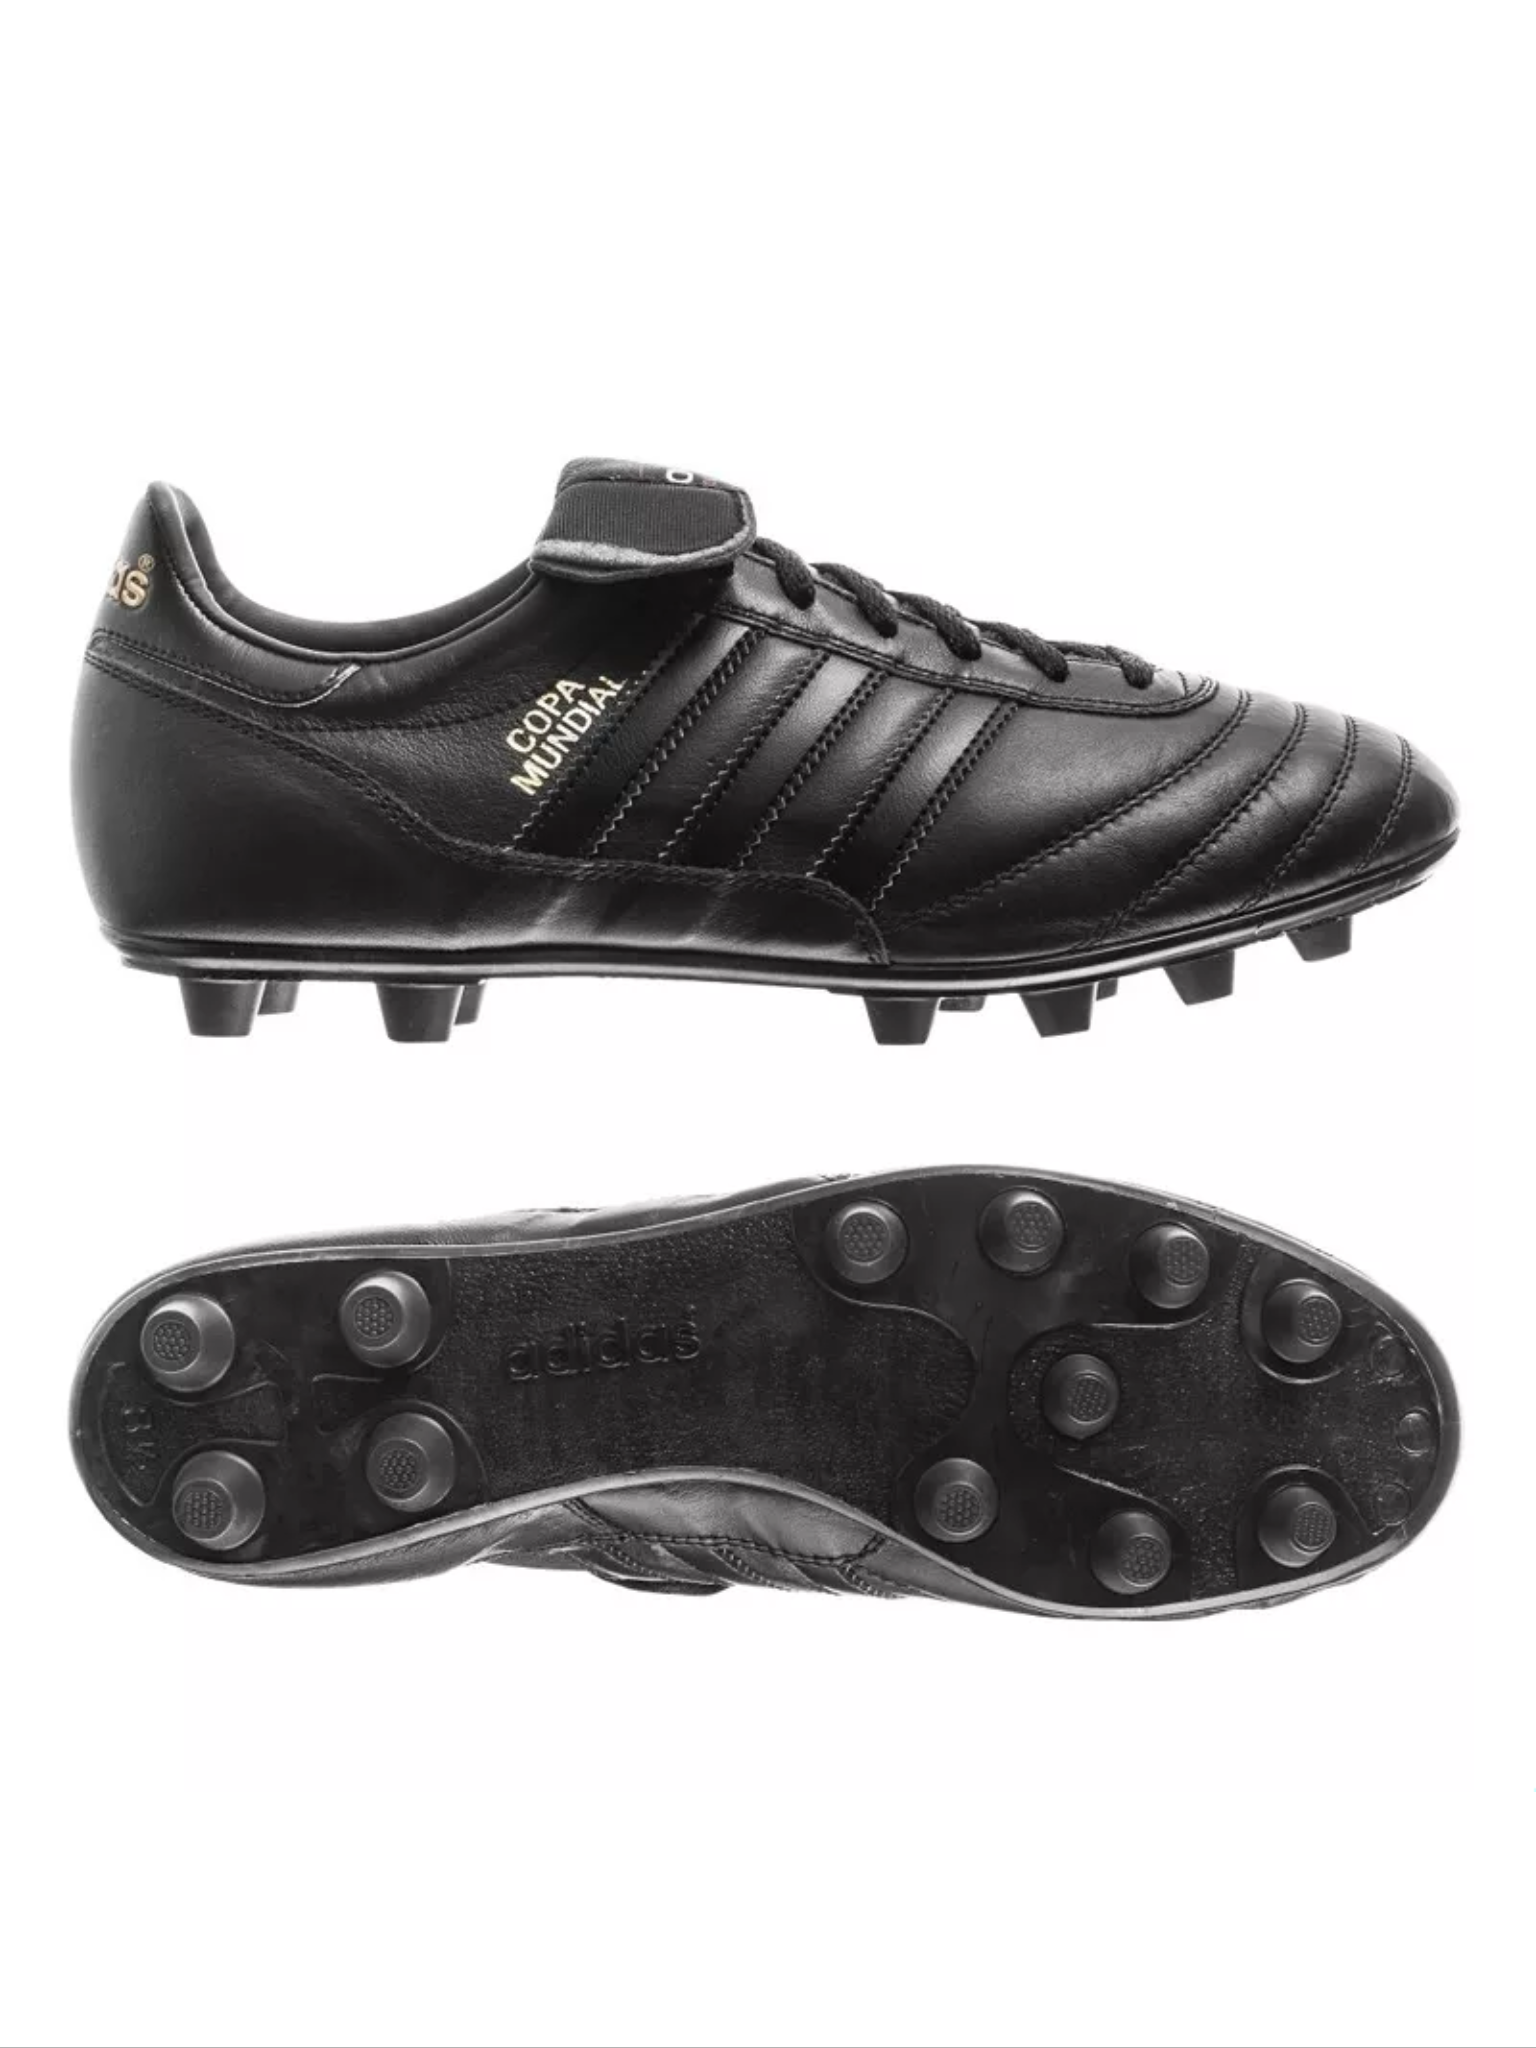 best sneakers bc4d2 4f5fa Adidas Copa Mundial in black on black. Wear like iron and feel like  butter... Adidas Copa Mundial Blackout Edition